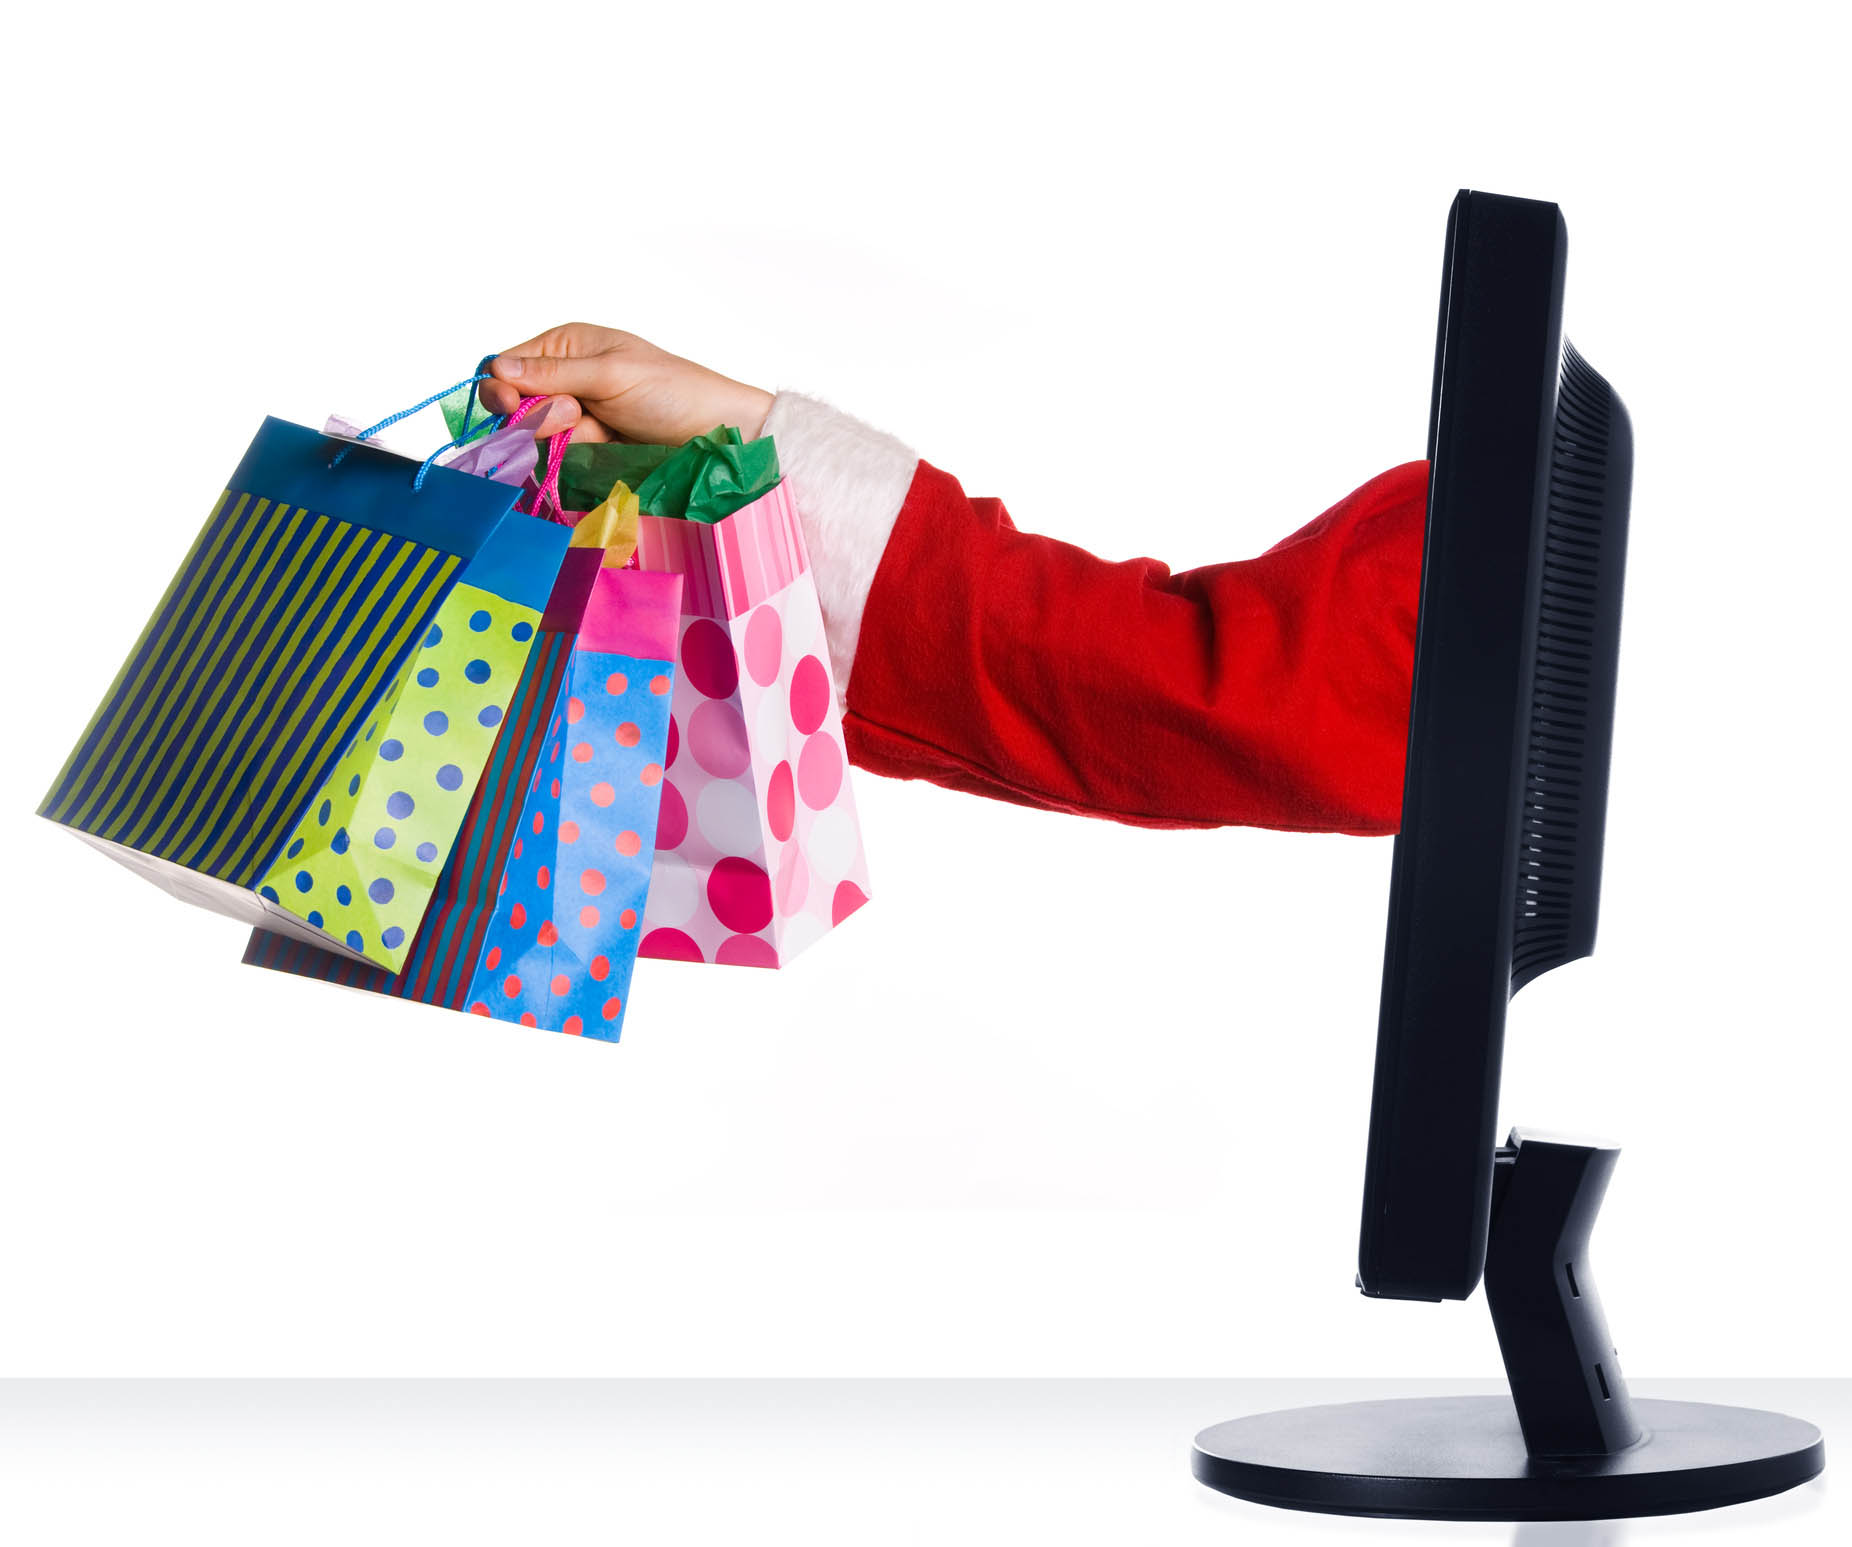 NPD predicts an increase in Online purchases this year